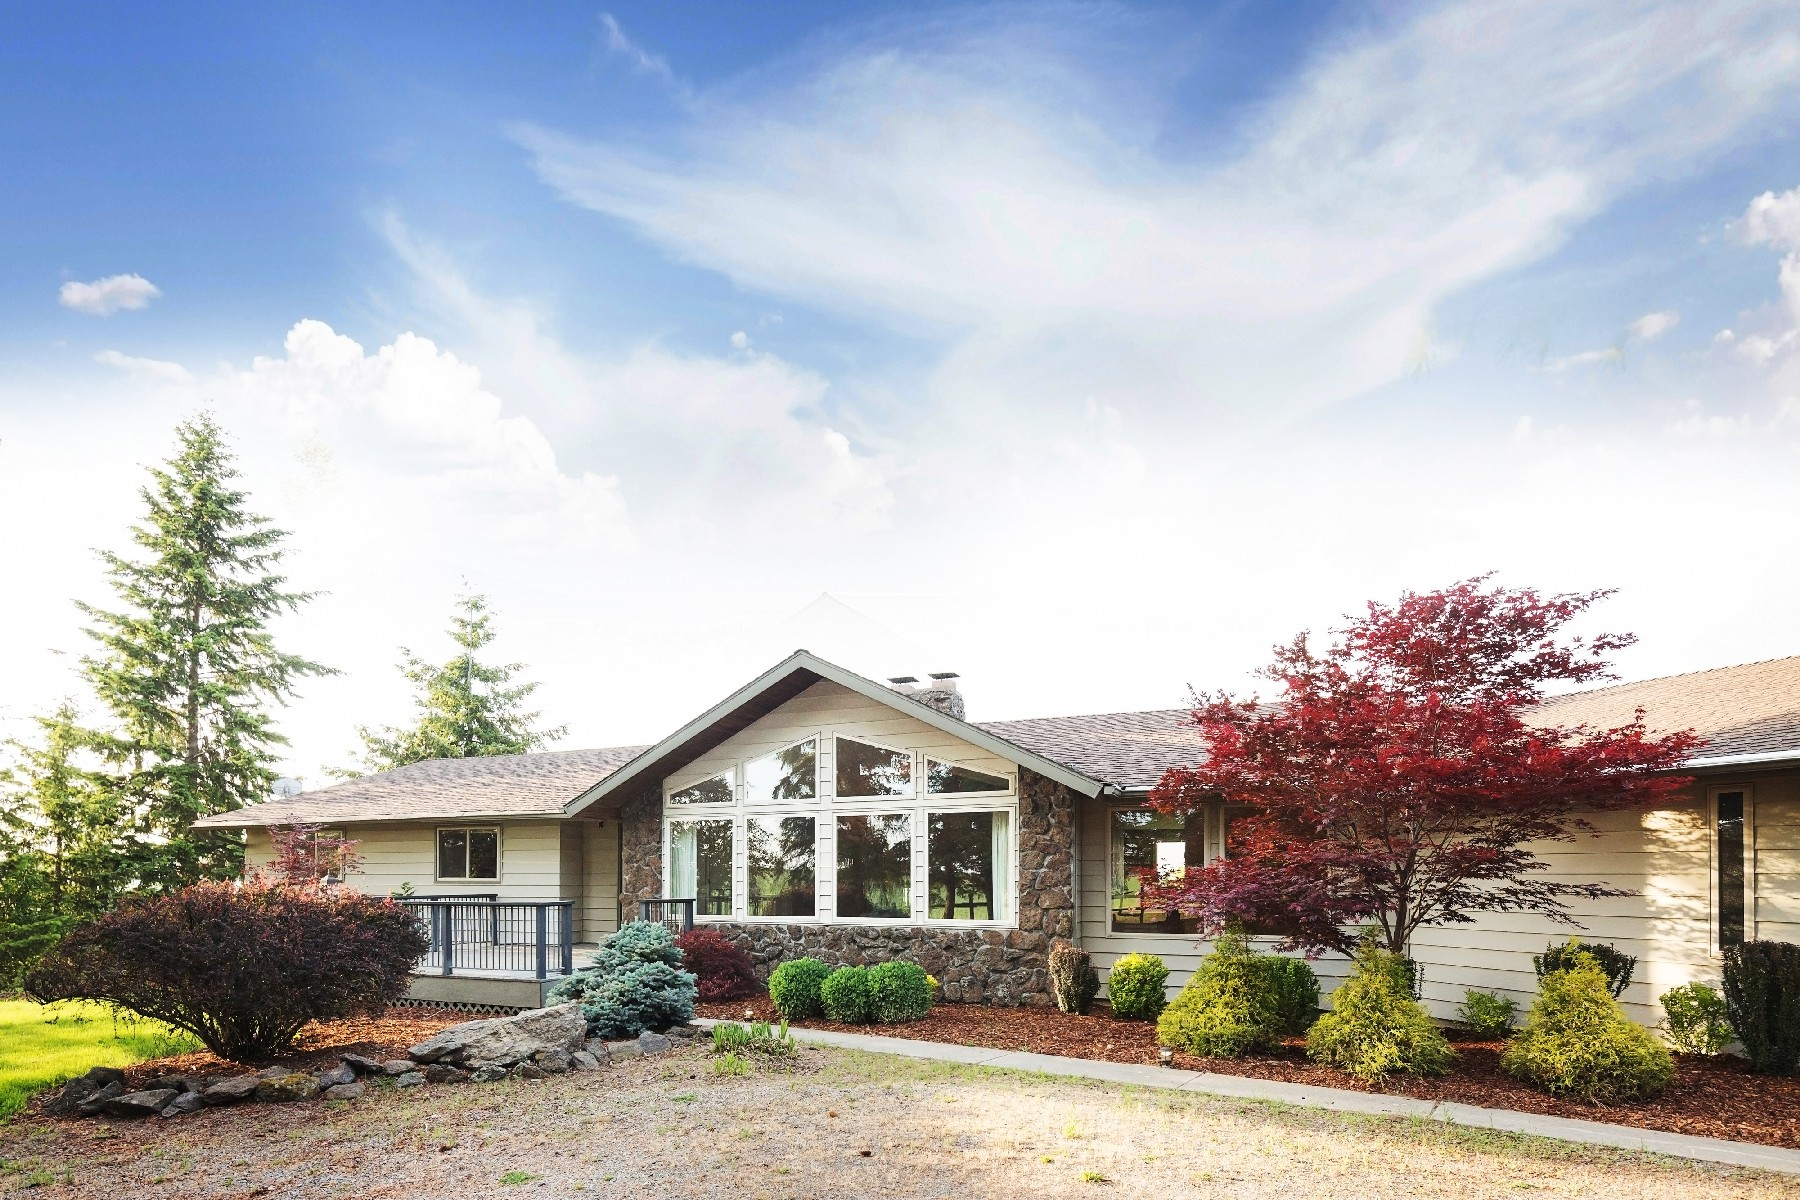 Single Family Homes for Sale at A Paradise with Something for Everyone 11405 E Stoughton Valleyford, Washington 99036 United States